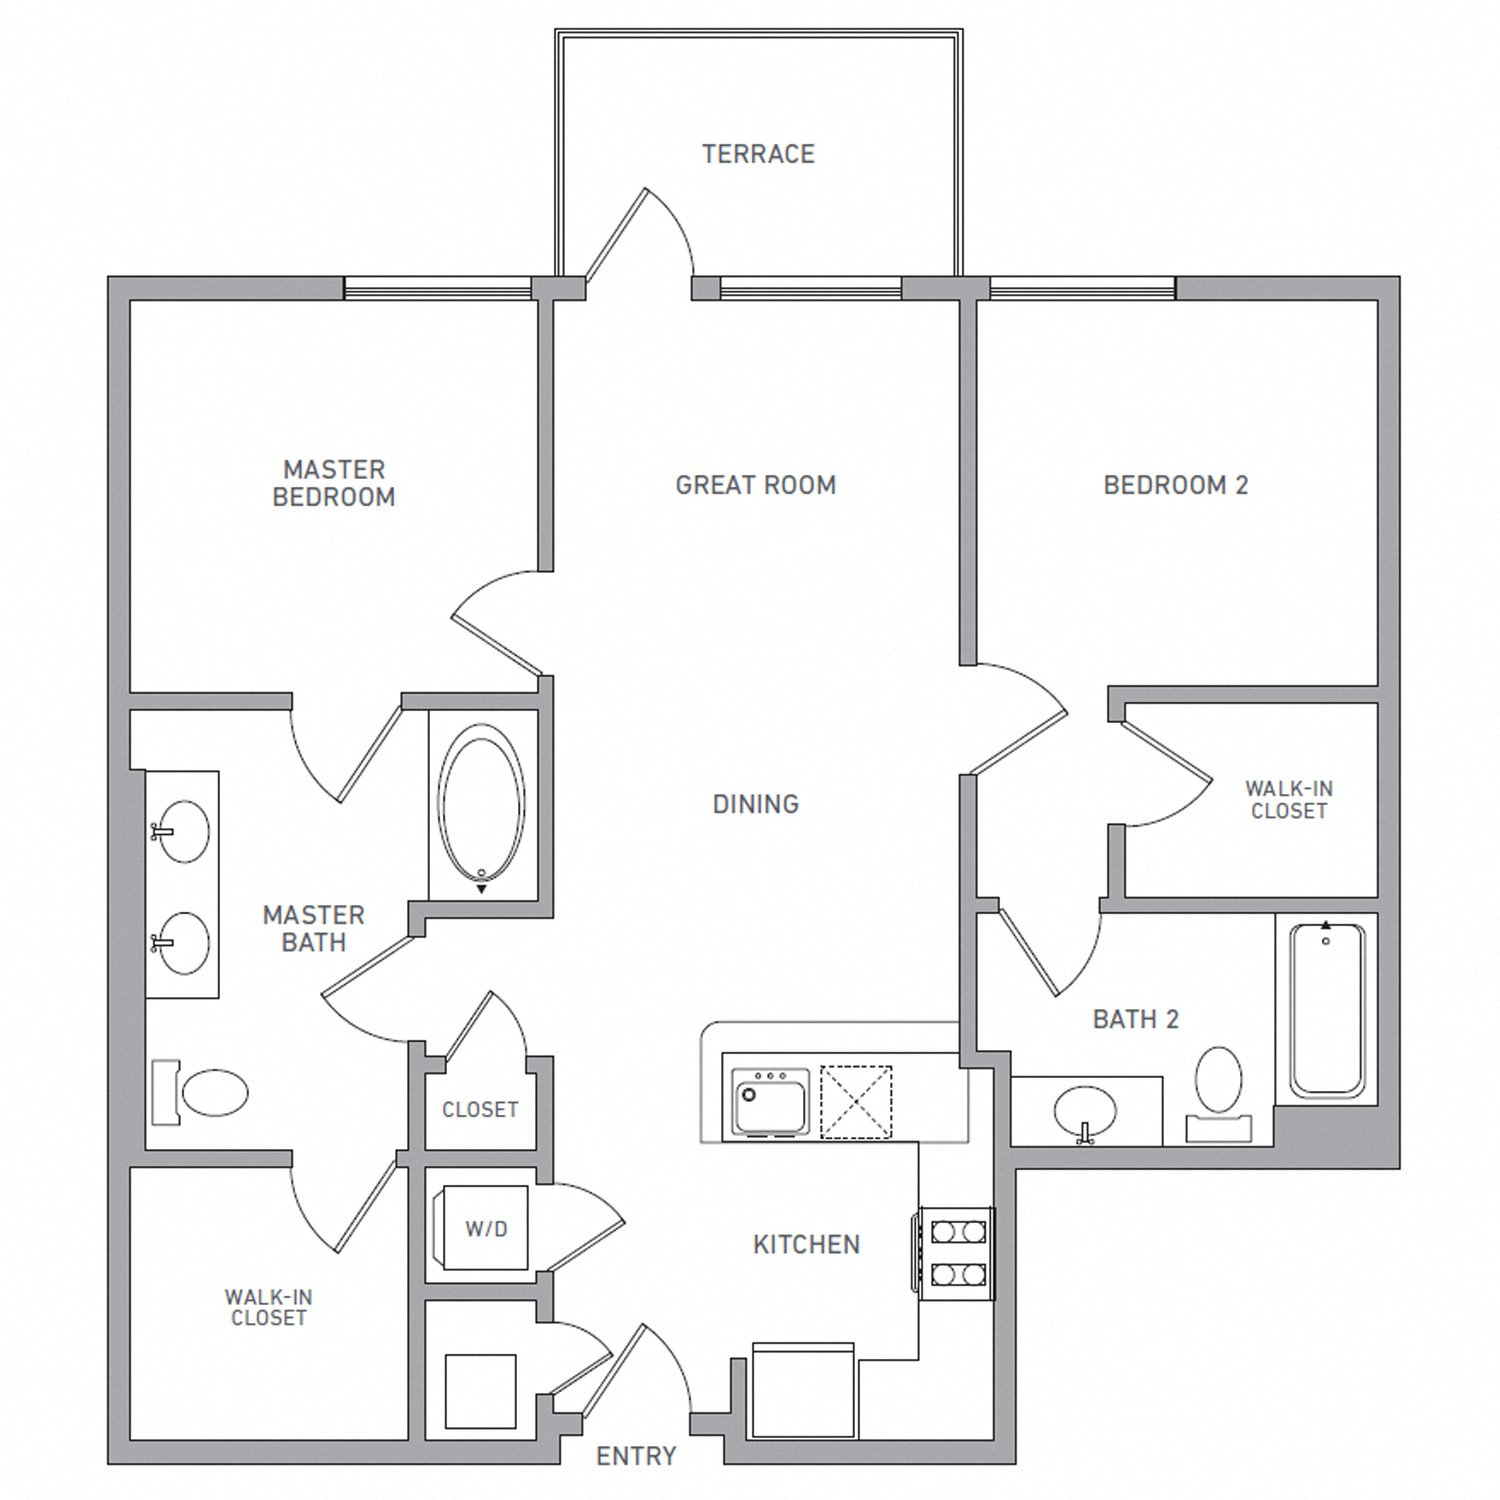 B One floor plan diagram. Two bedrooms, two bathrooms, an open kitchen and living area, a terrace, and a washer dryer.